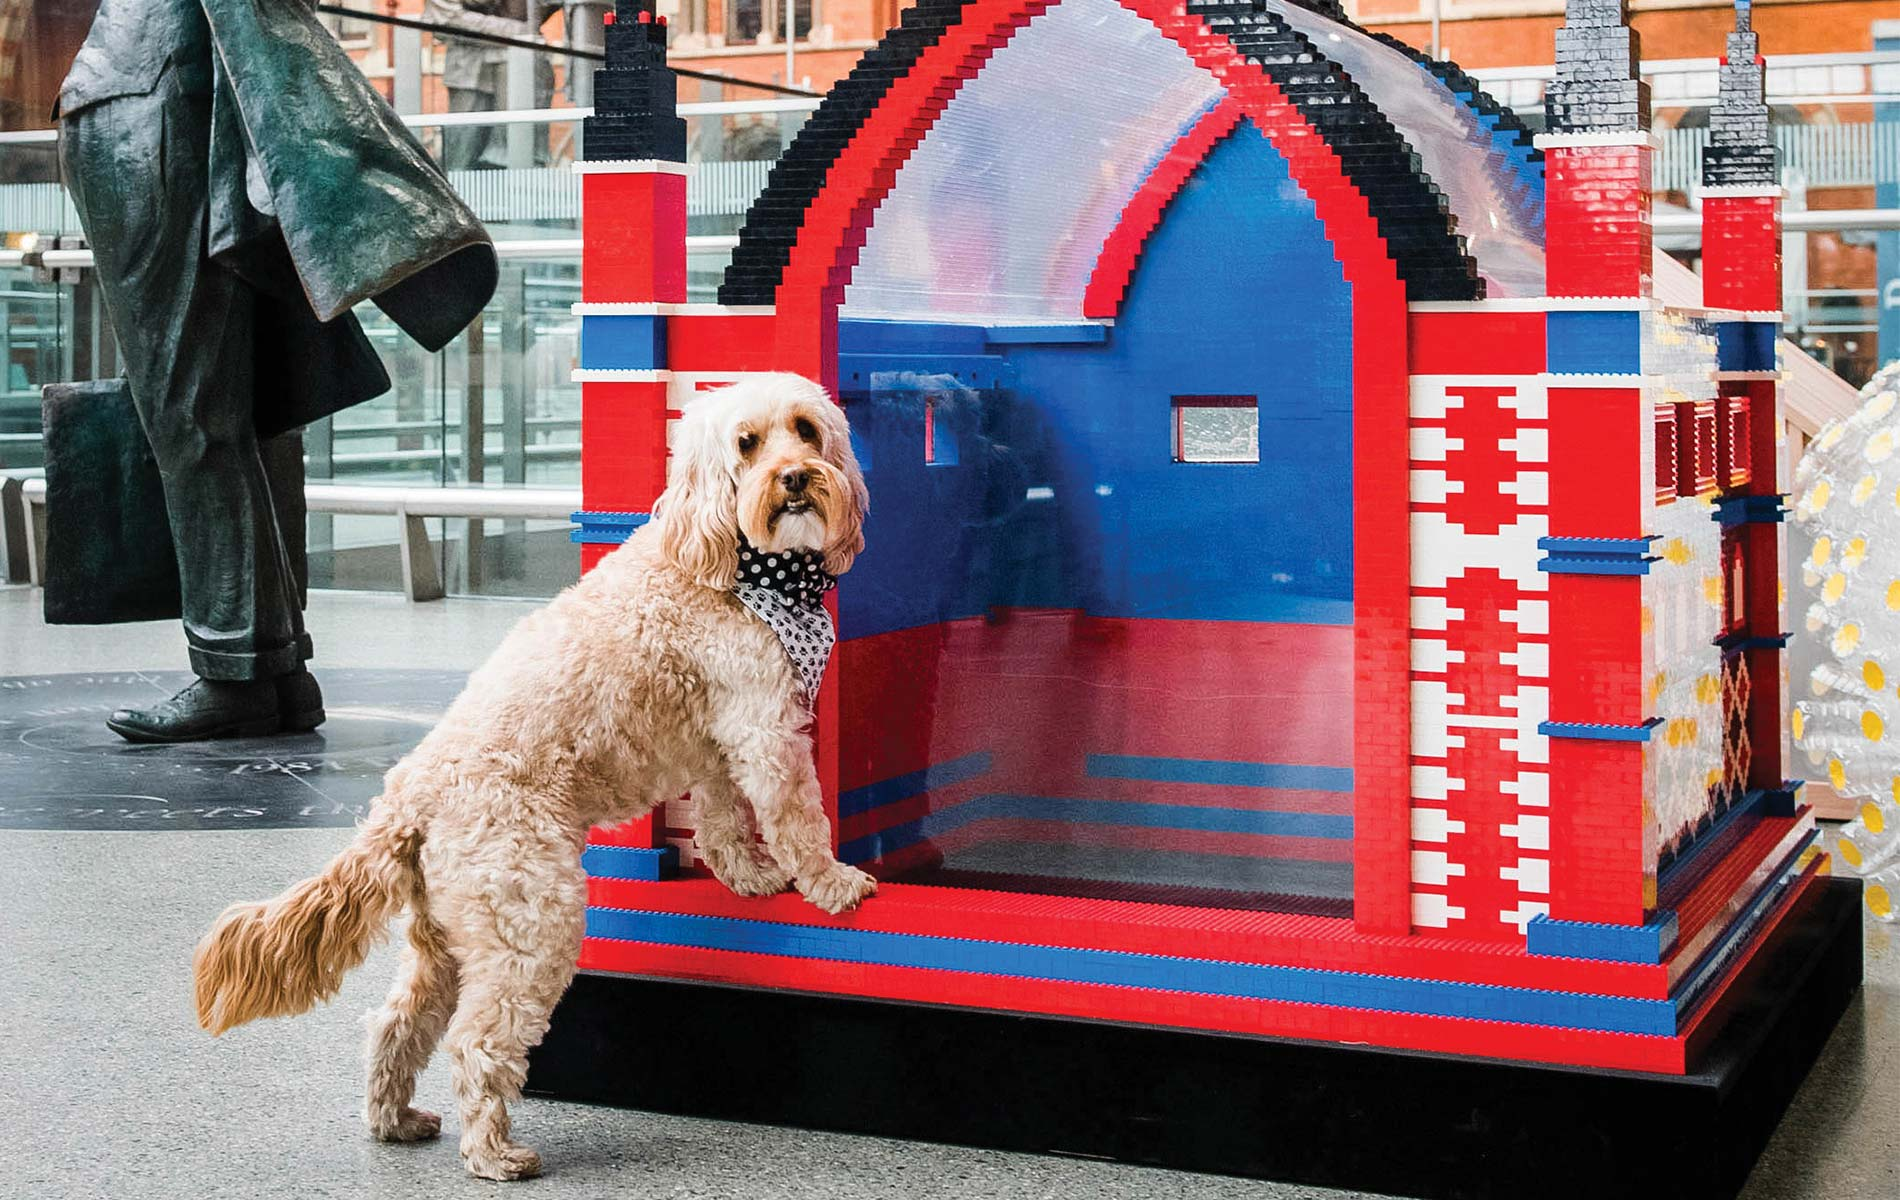 This creative example of barkitecture was made from Legos for the 2018 BowWow Haus and displayed at Saint Pancras International Railway Station, London.